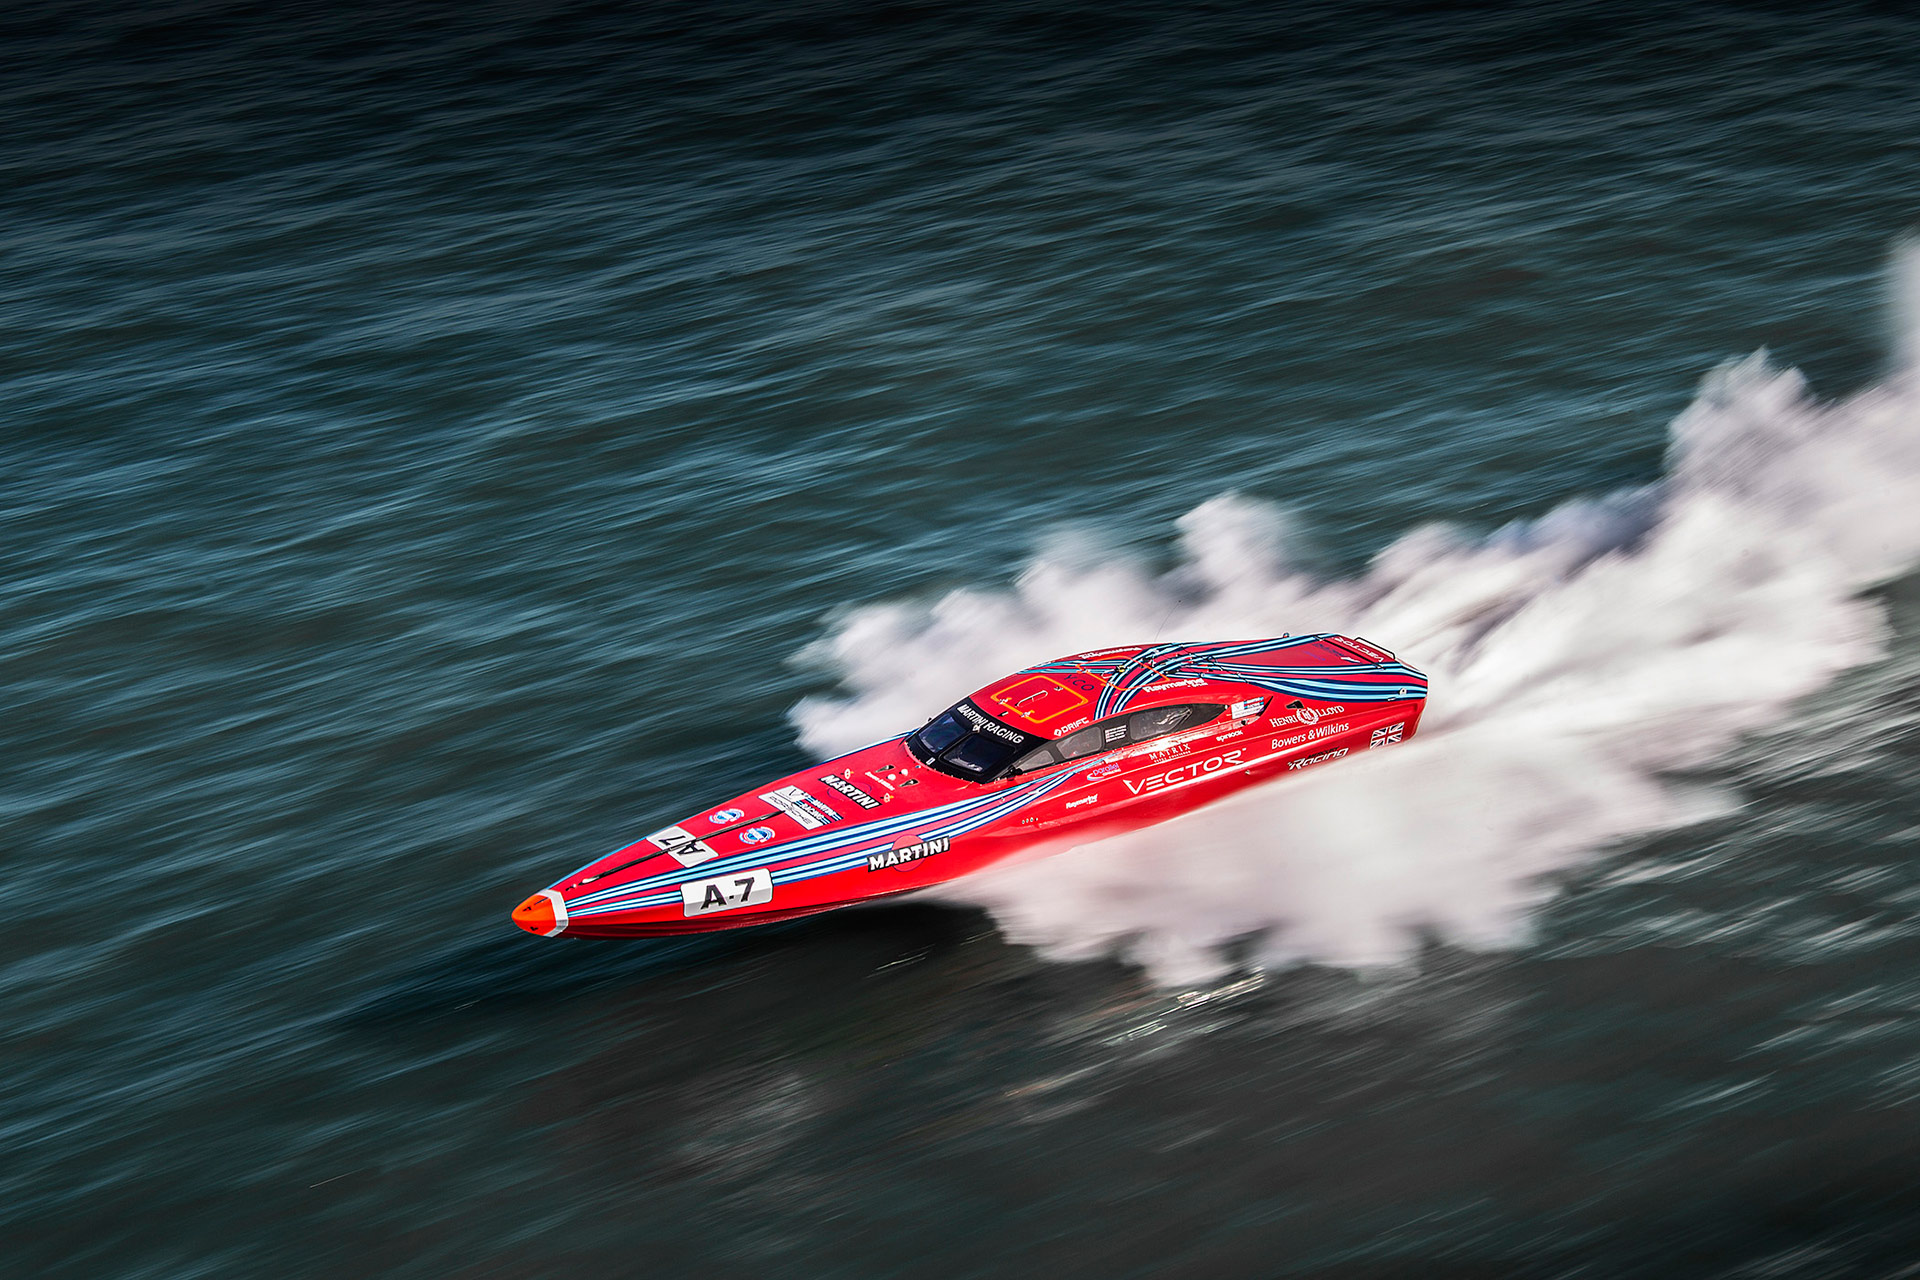 VECTOR WINS HISTORIC COWES CLASSIC 2015